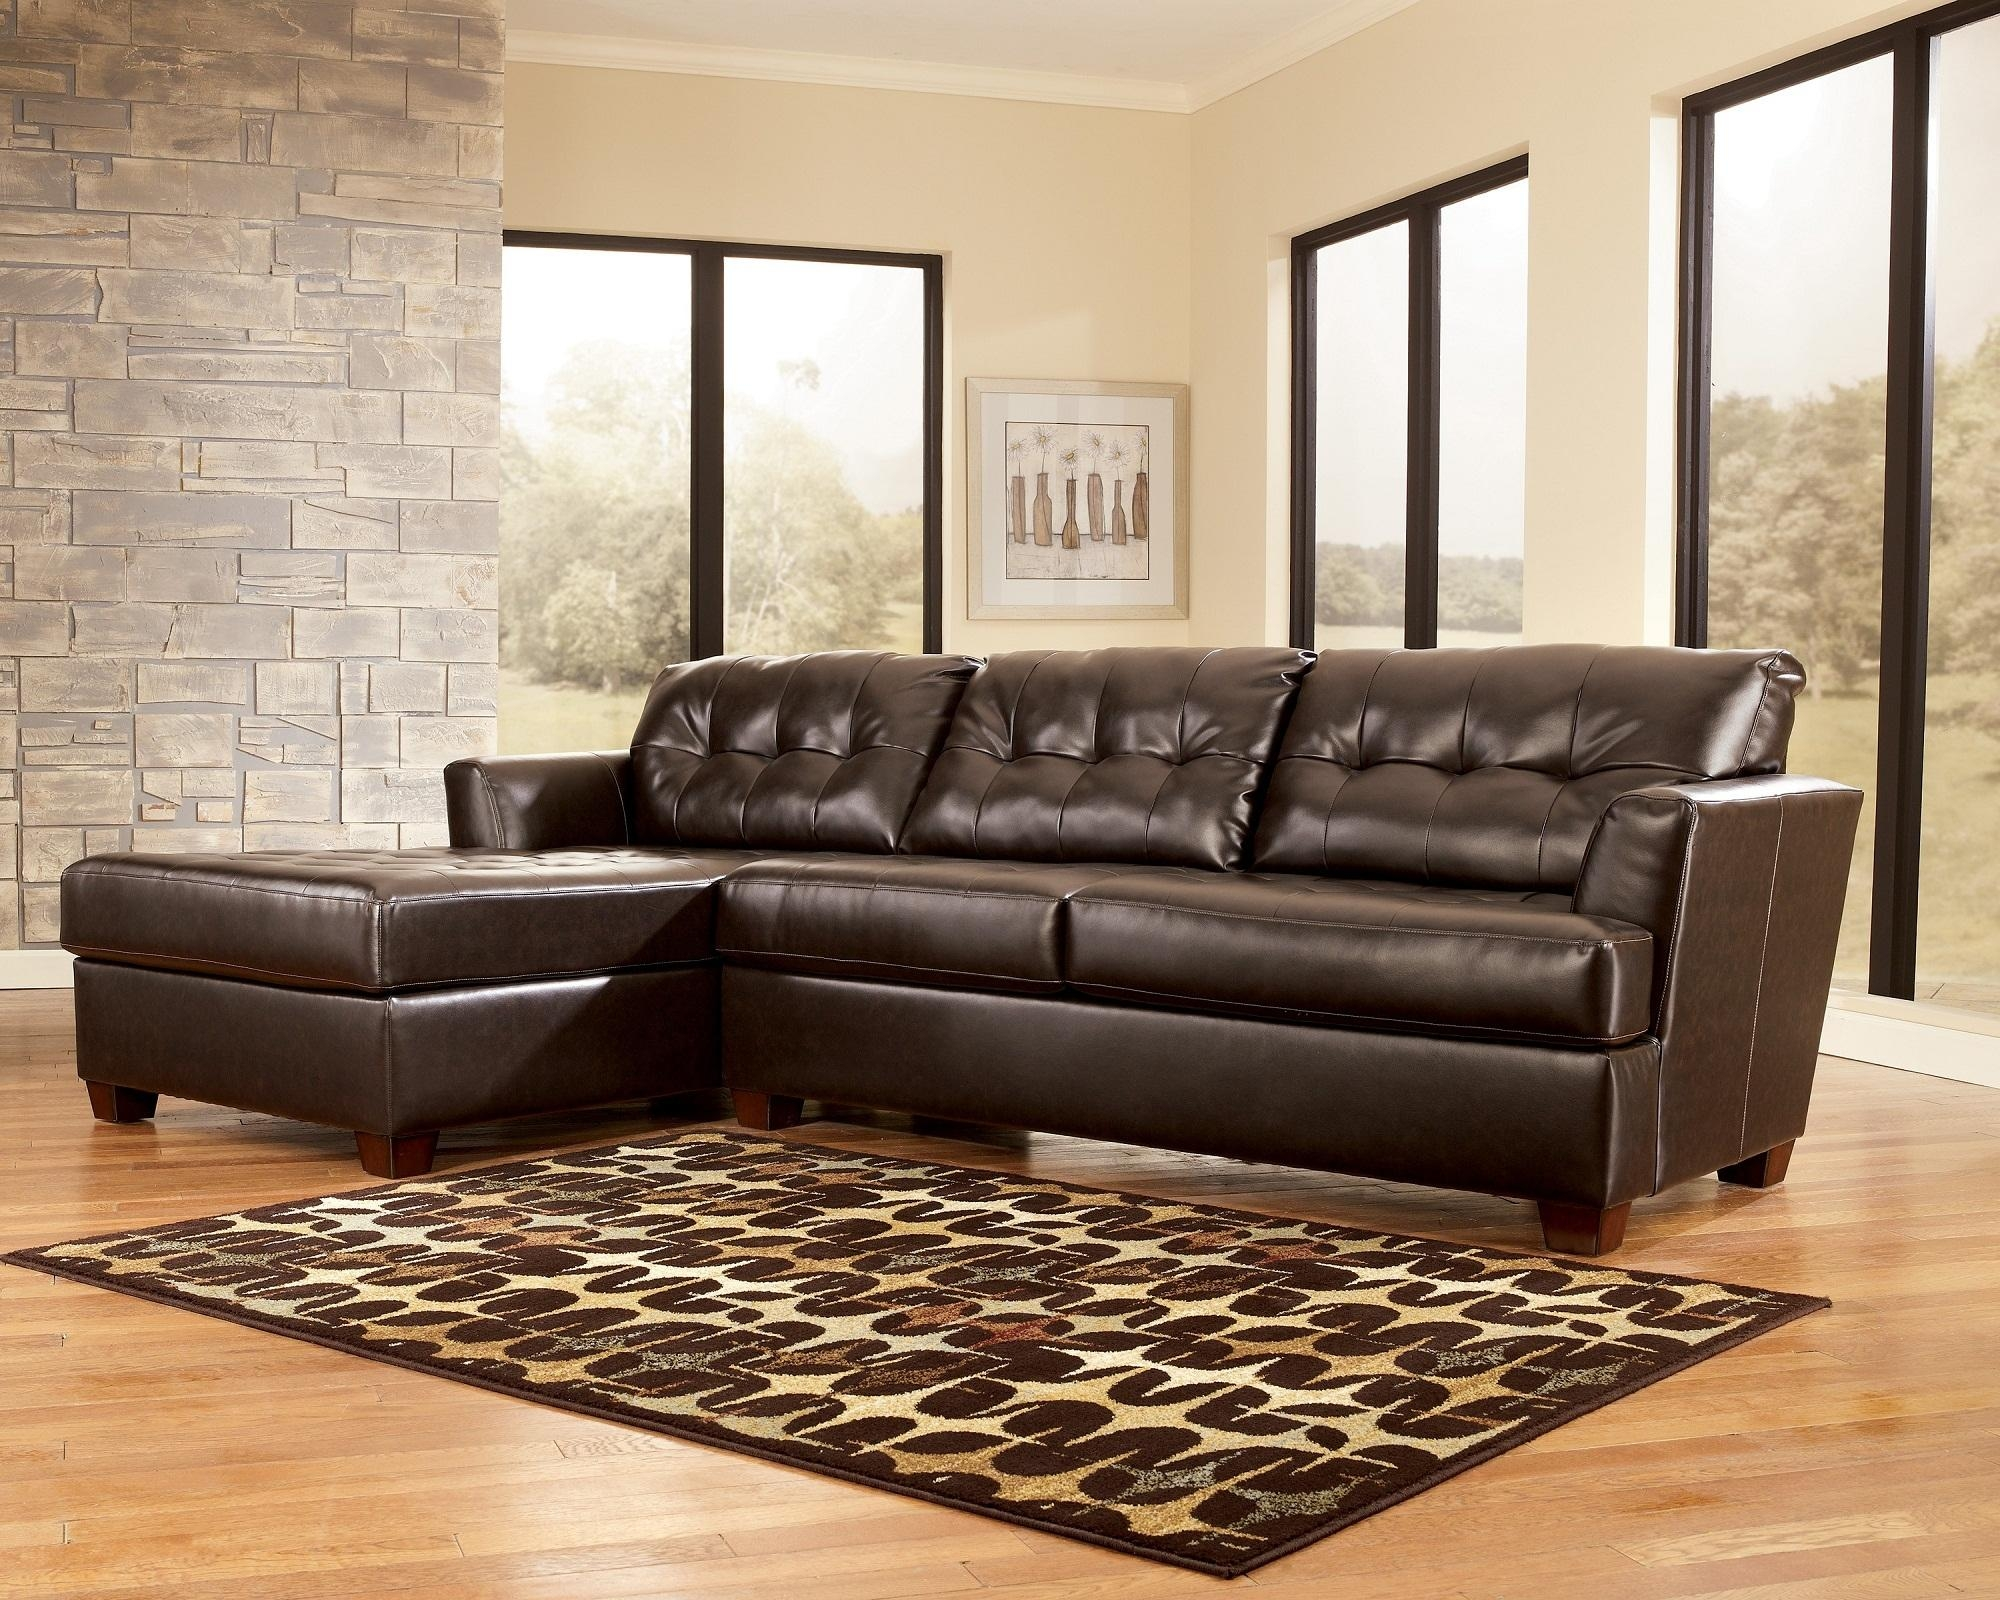 9 Best Contemporary Leather Sectional Sleeper Sofa With Chaise Regarding Black Leather Sectional Sleeper Sofas (Image 1 of 21)